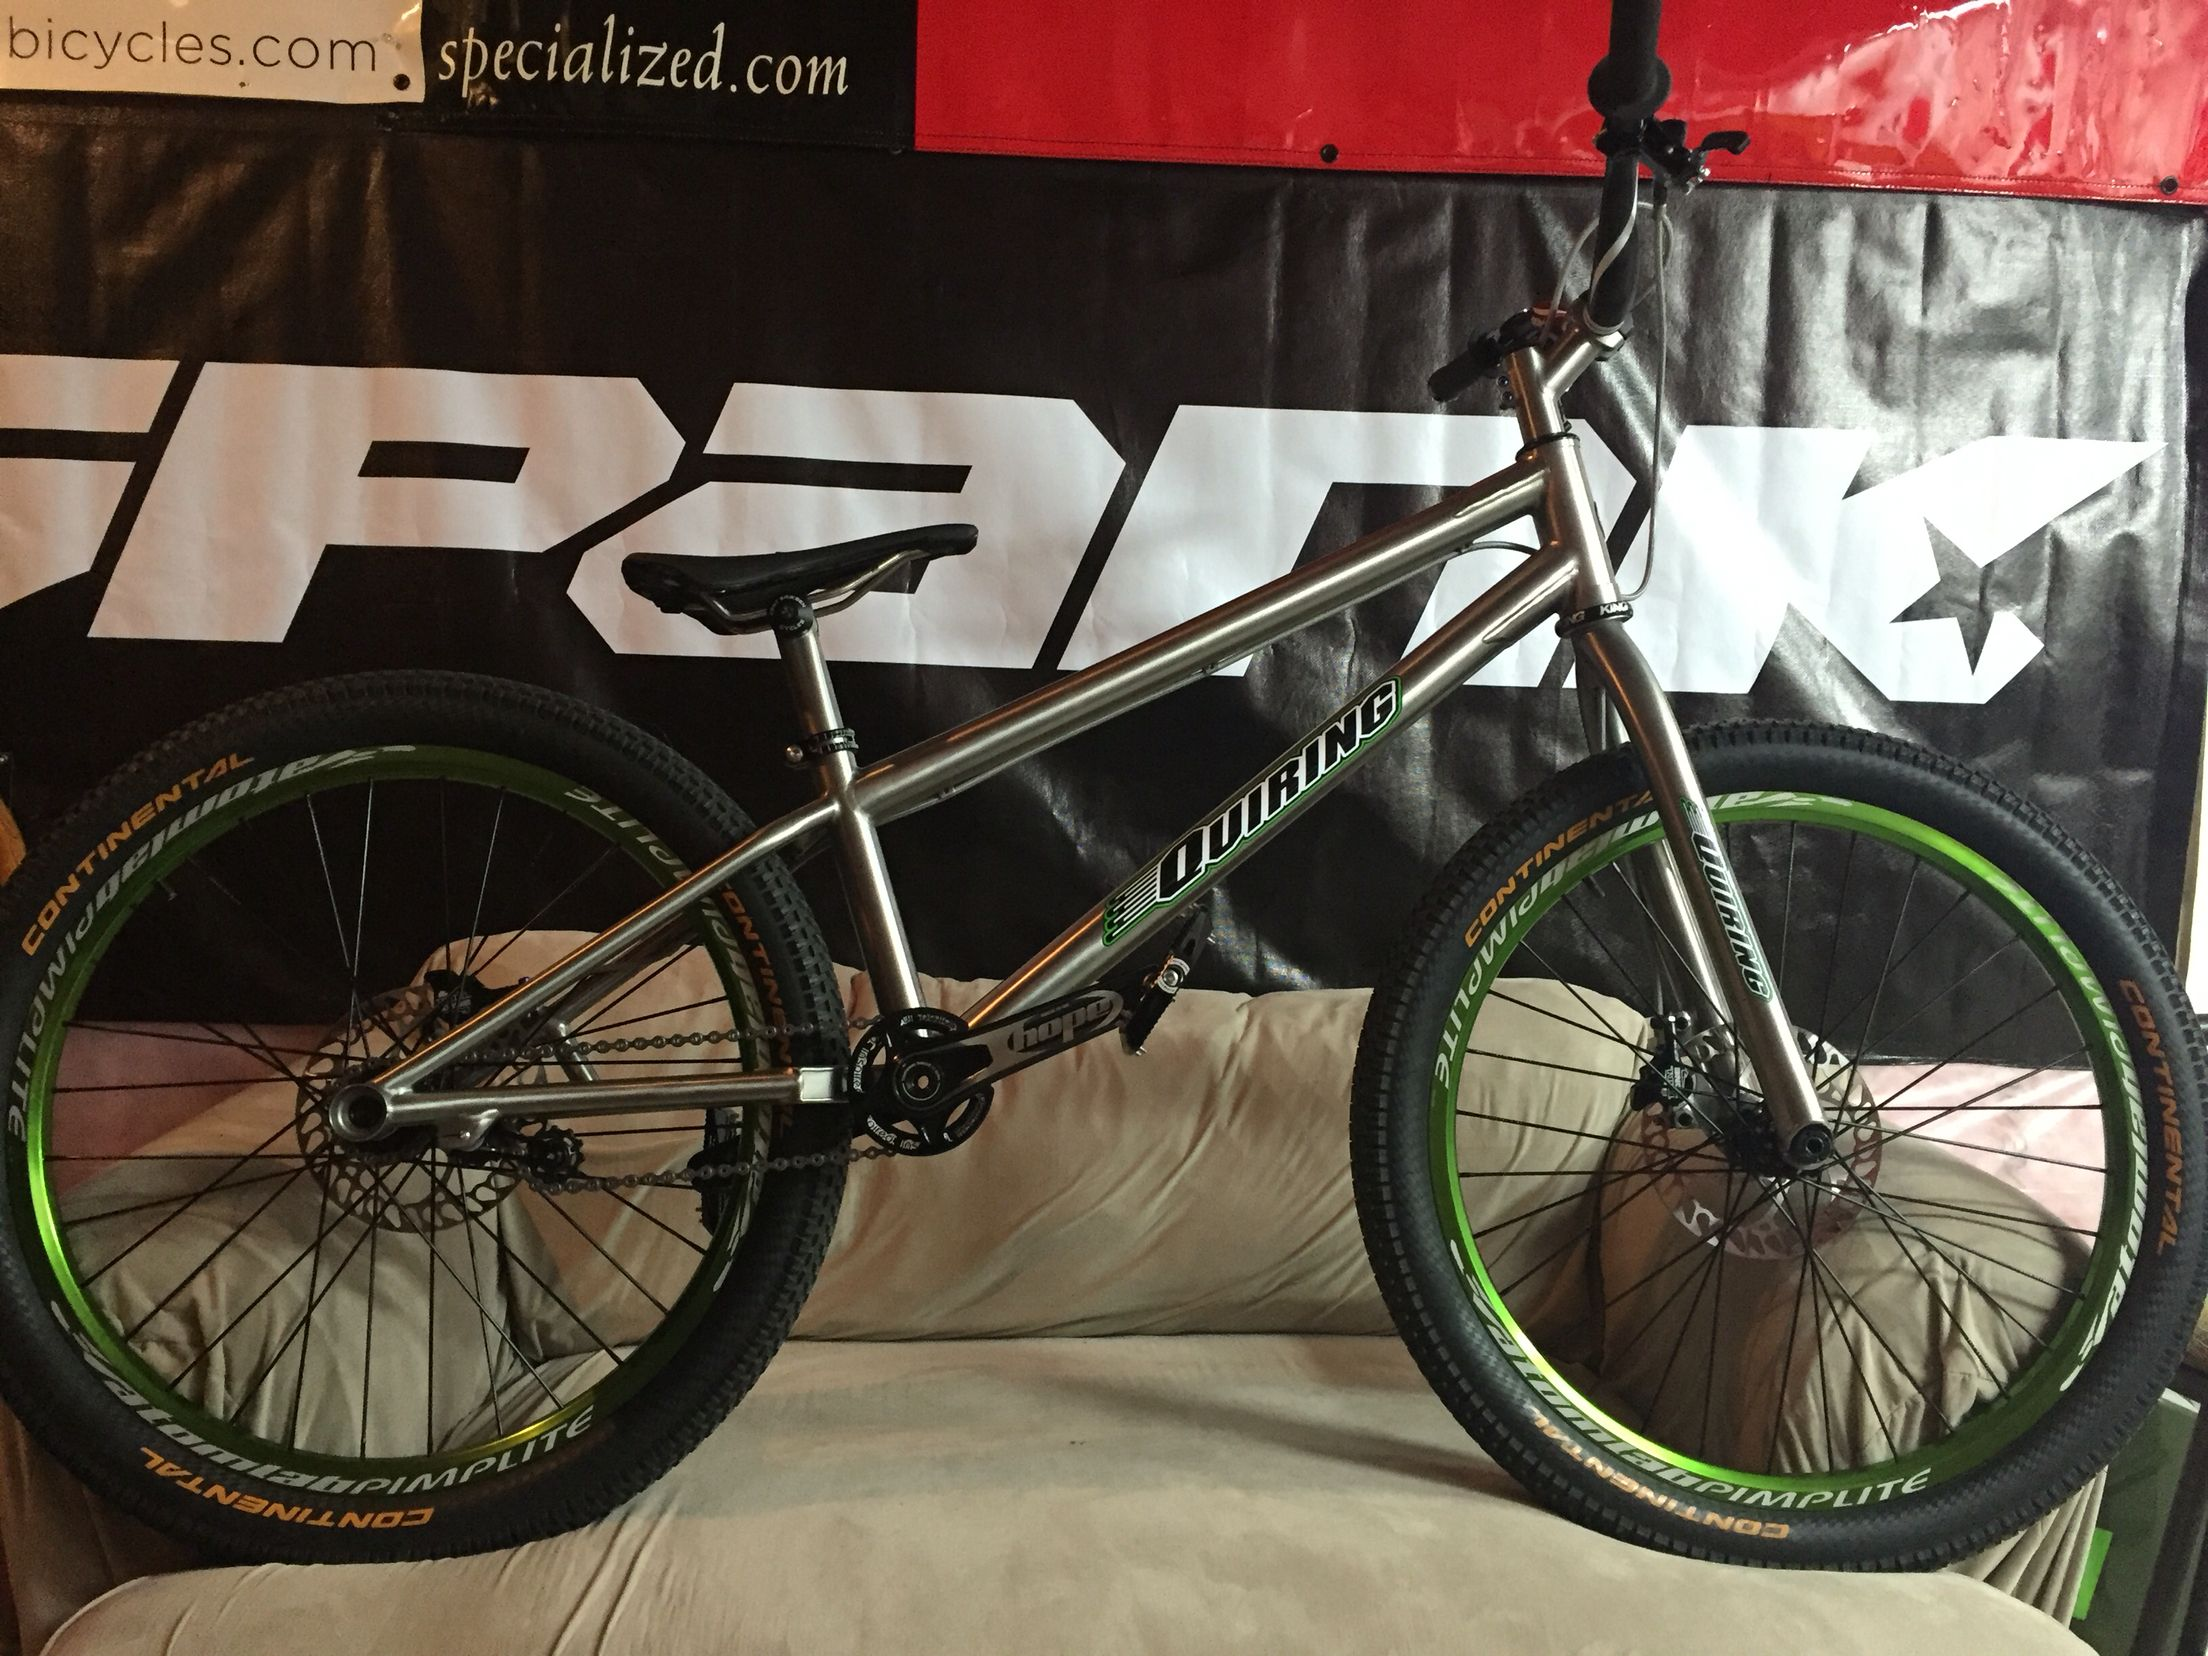 Custom Quiring 24 Trials Bike Trial Bike Bmx Bicycle Bicycle